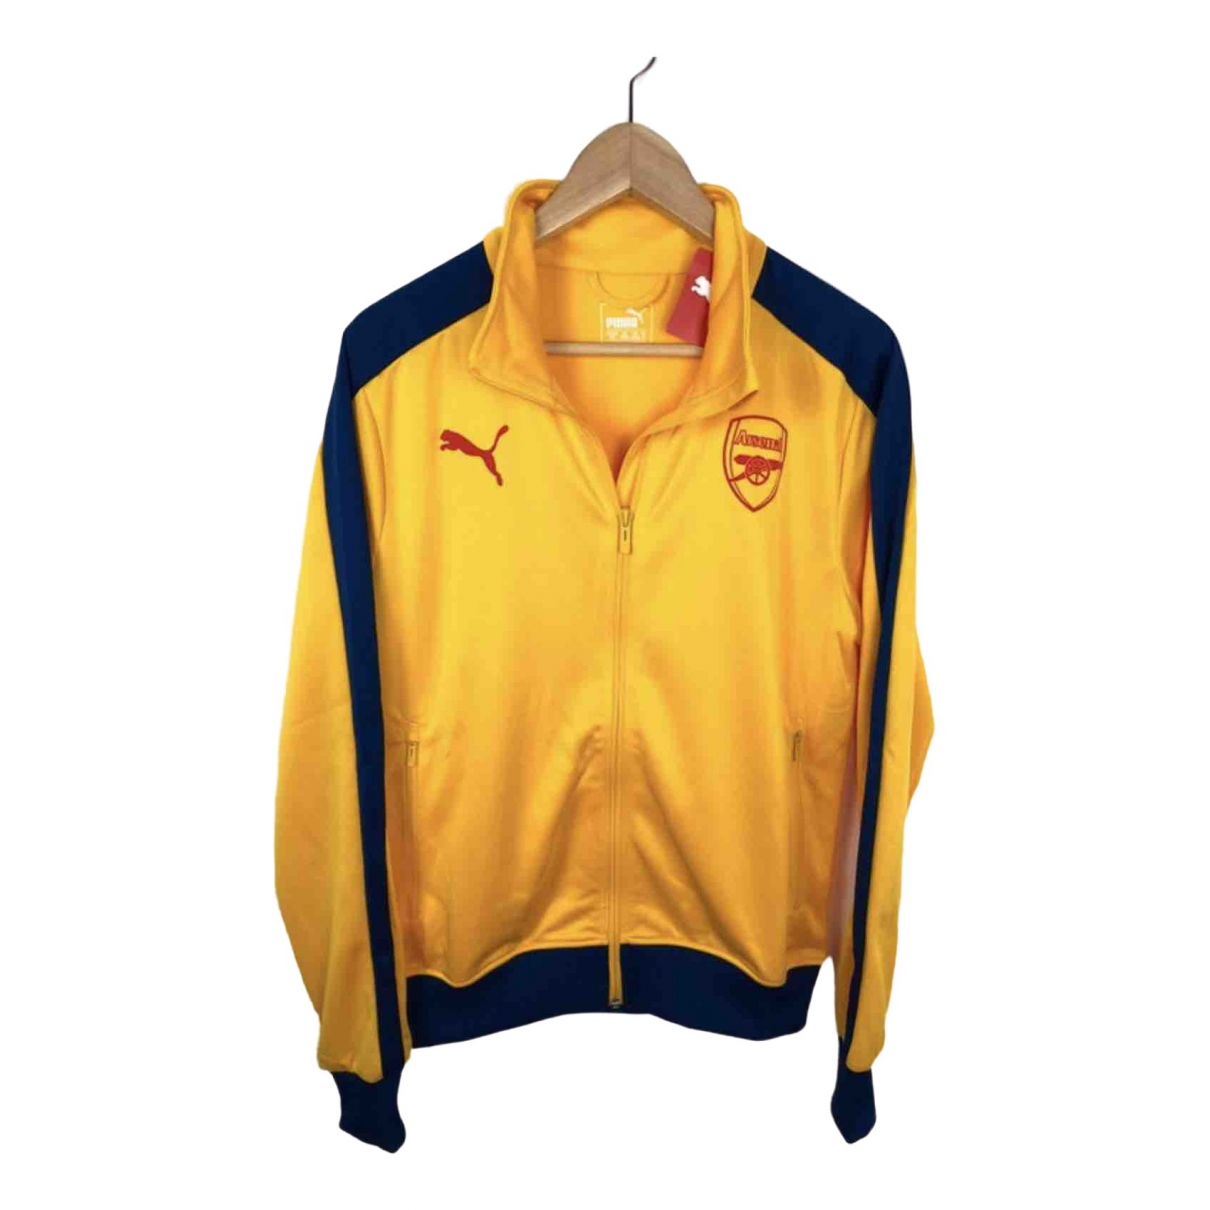 Puma \N Yellow jacket  for Men S International